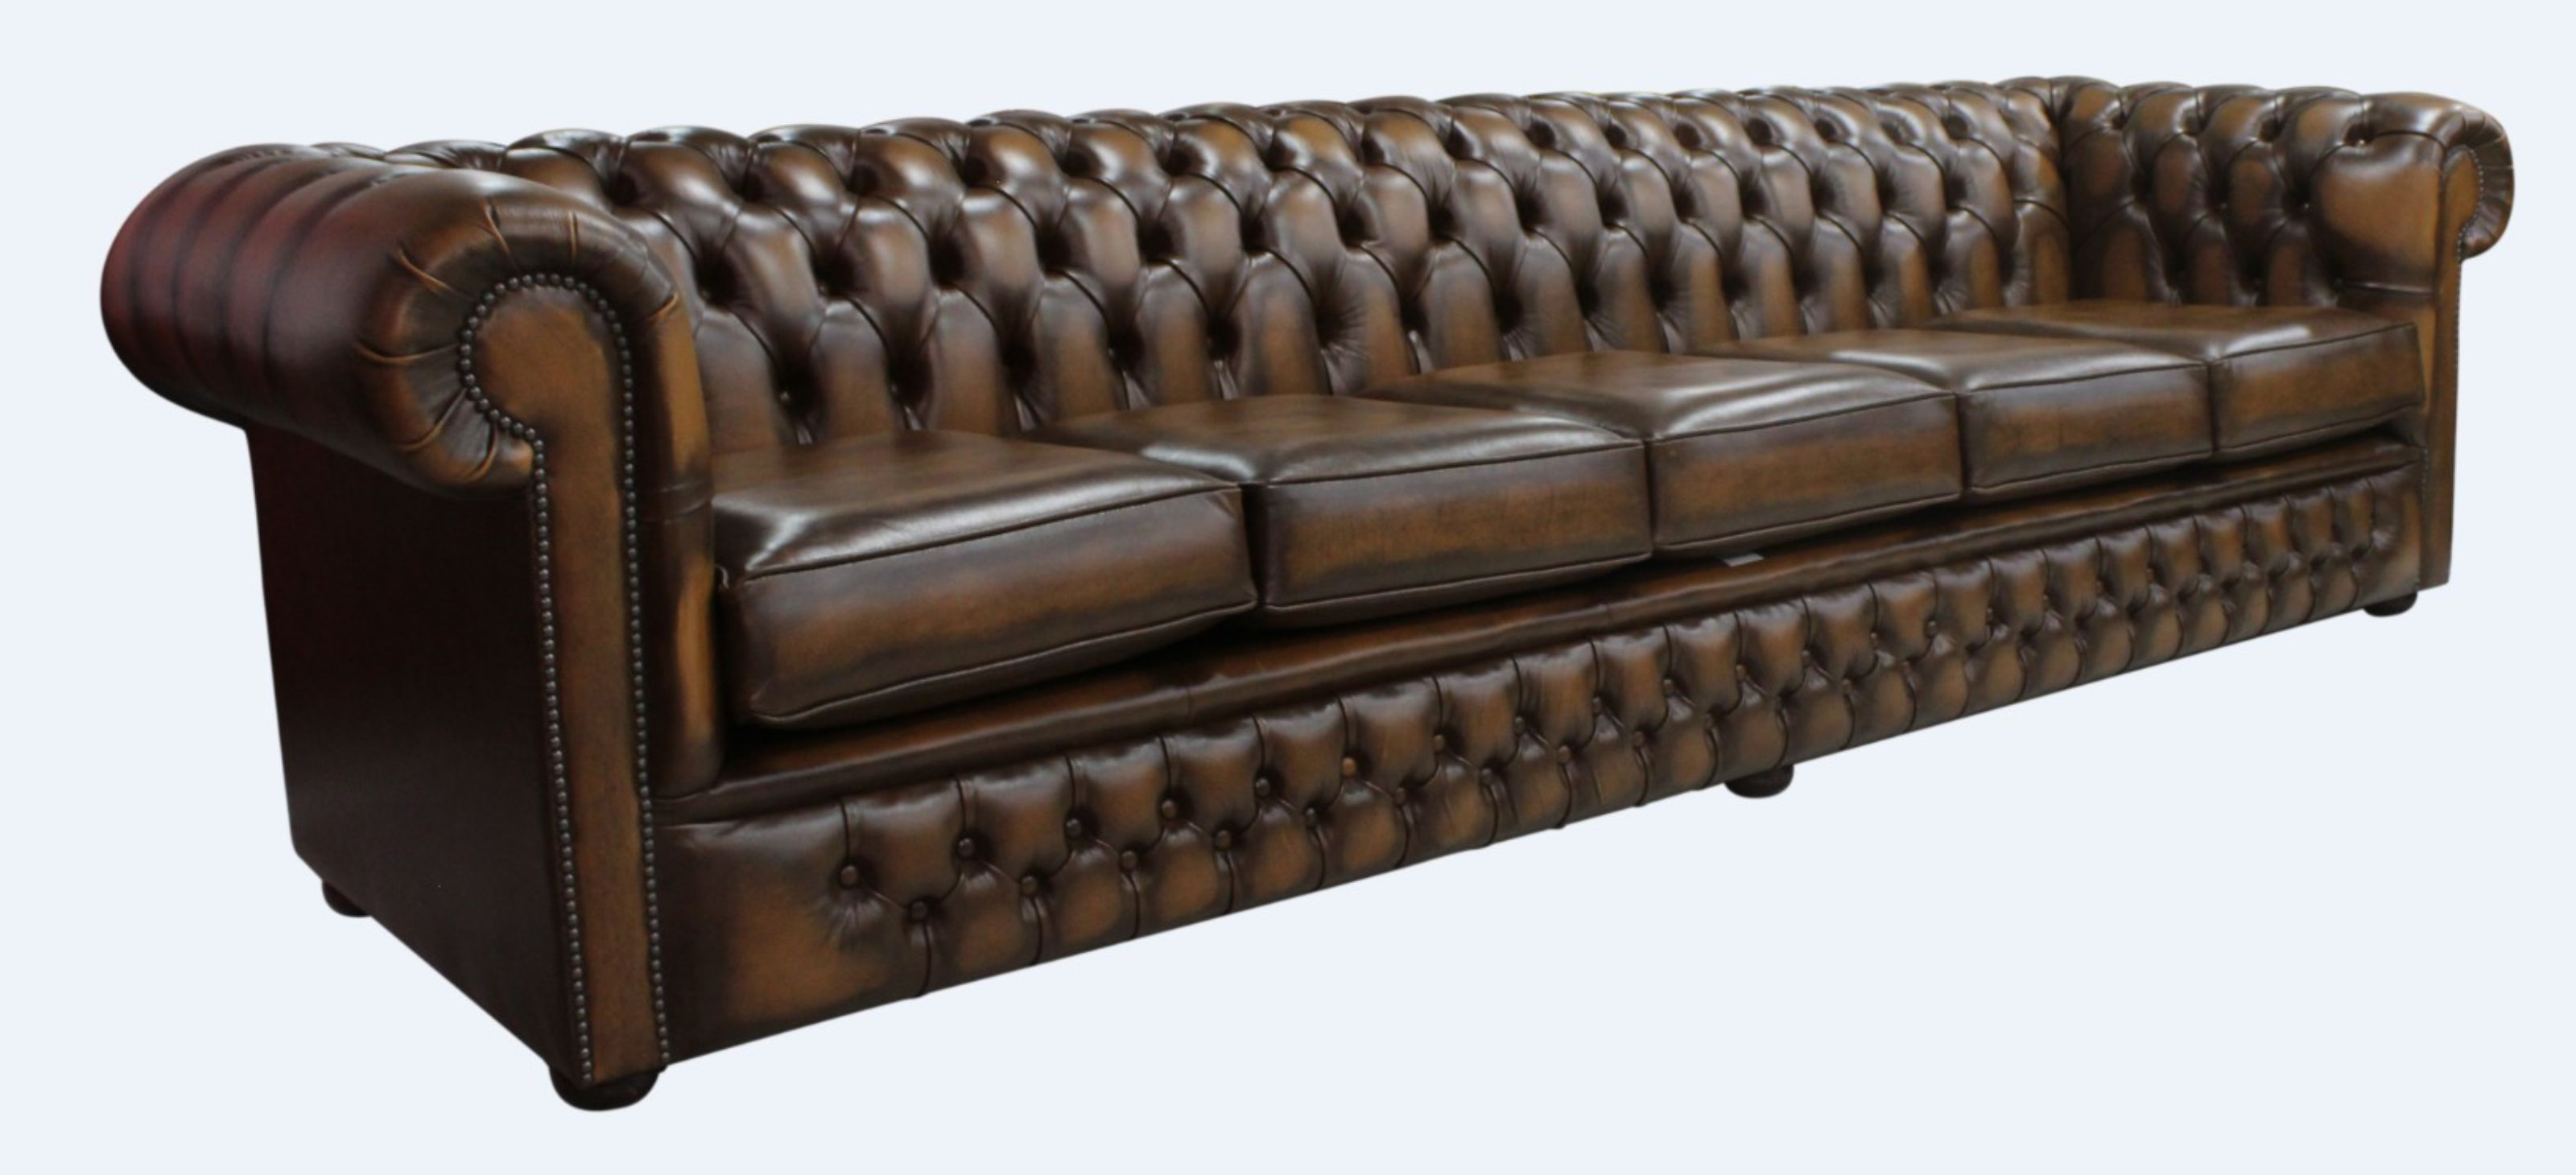 Surprising Chesterfield Winchester 5 Seater Settee Antique Tan Leather Download Free Architecture Designs Aeocymadebymaigaardcom